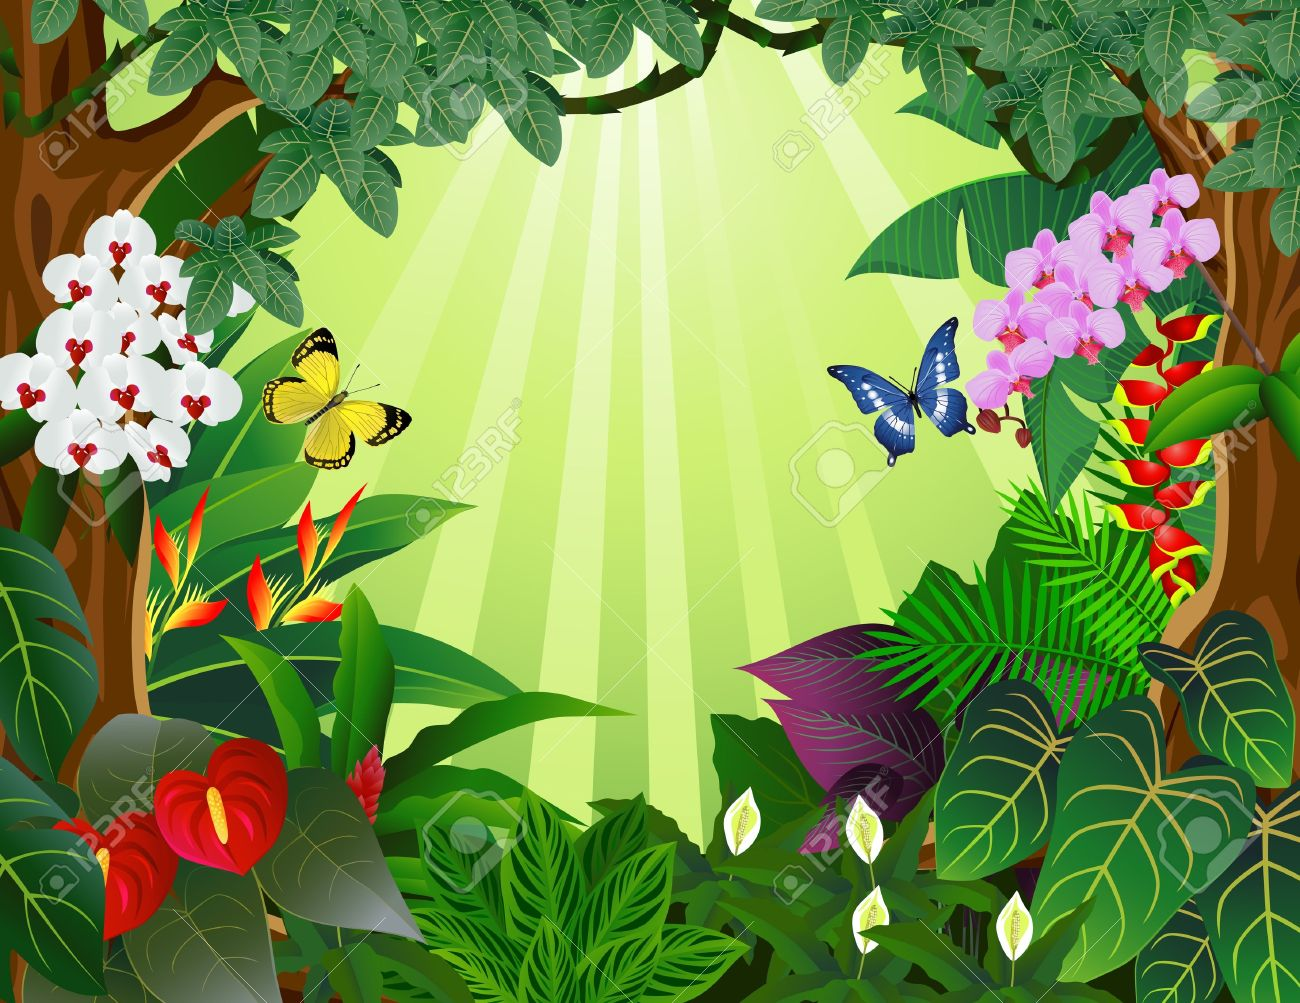 Grounds tropics clipart - Clipground